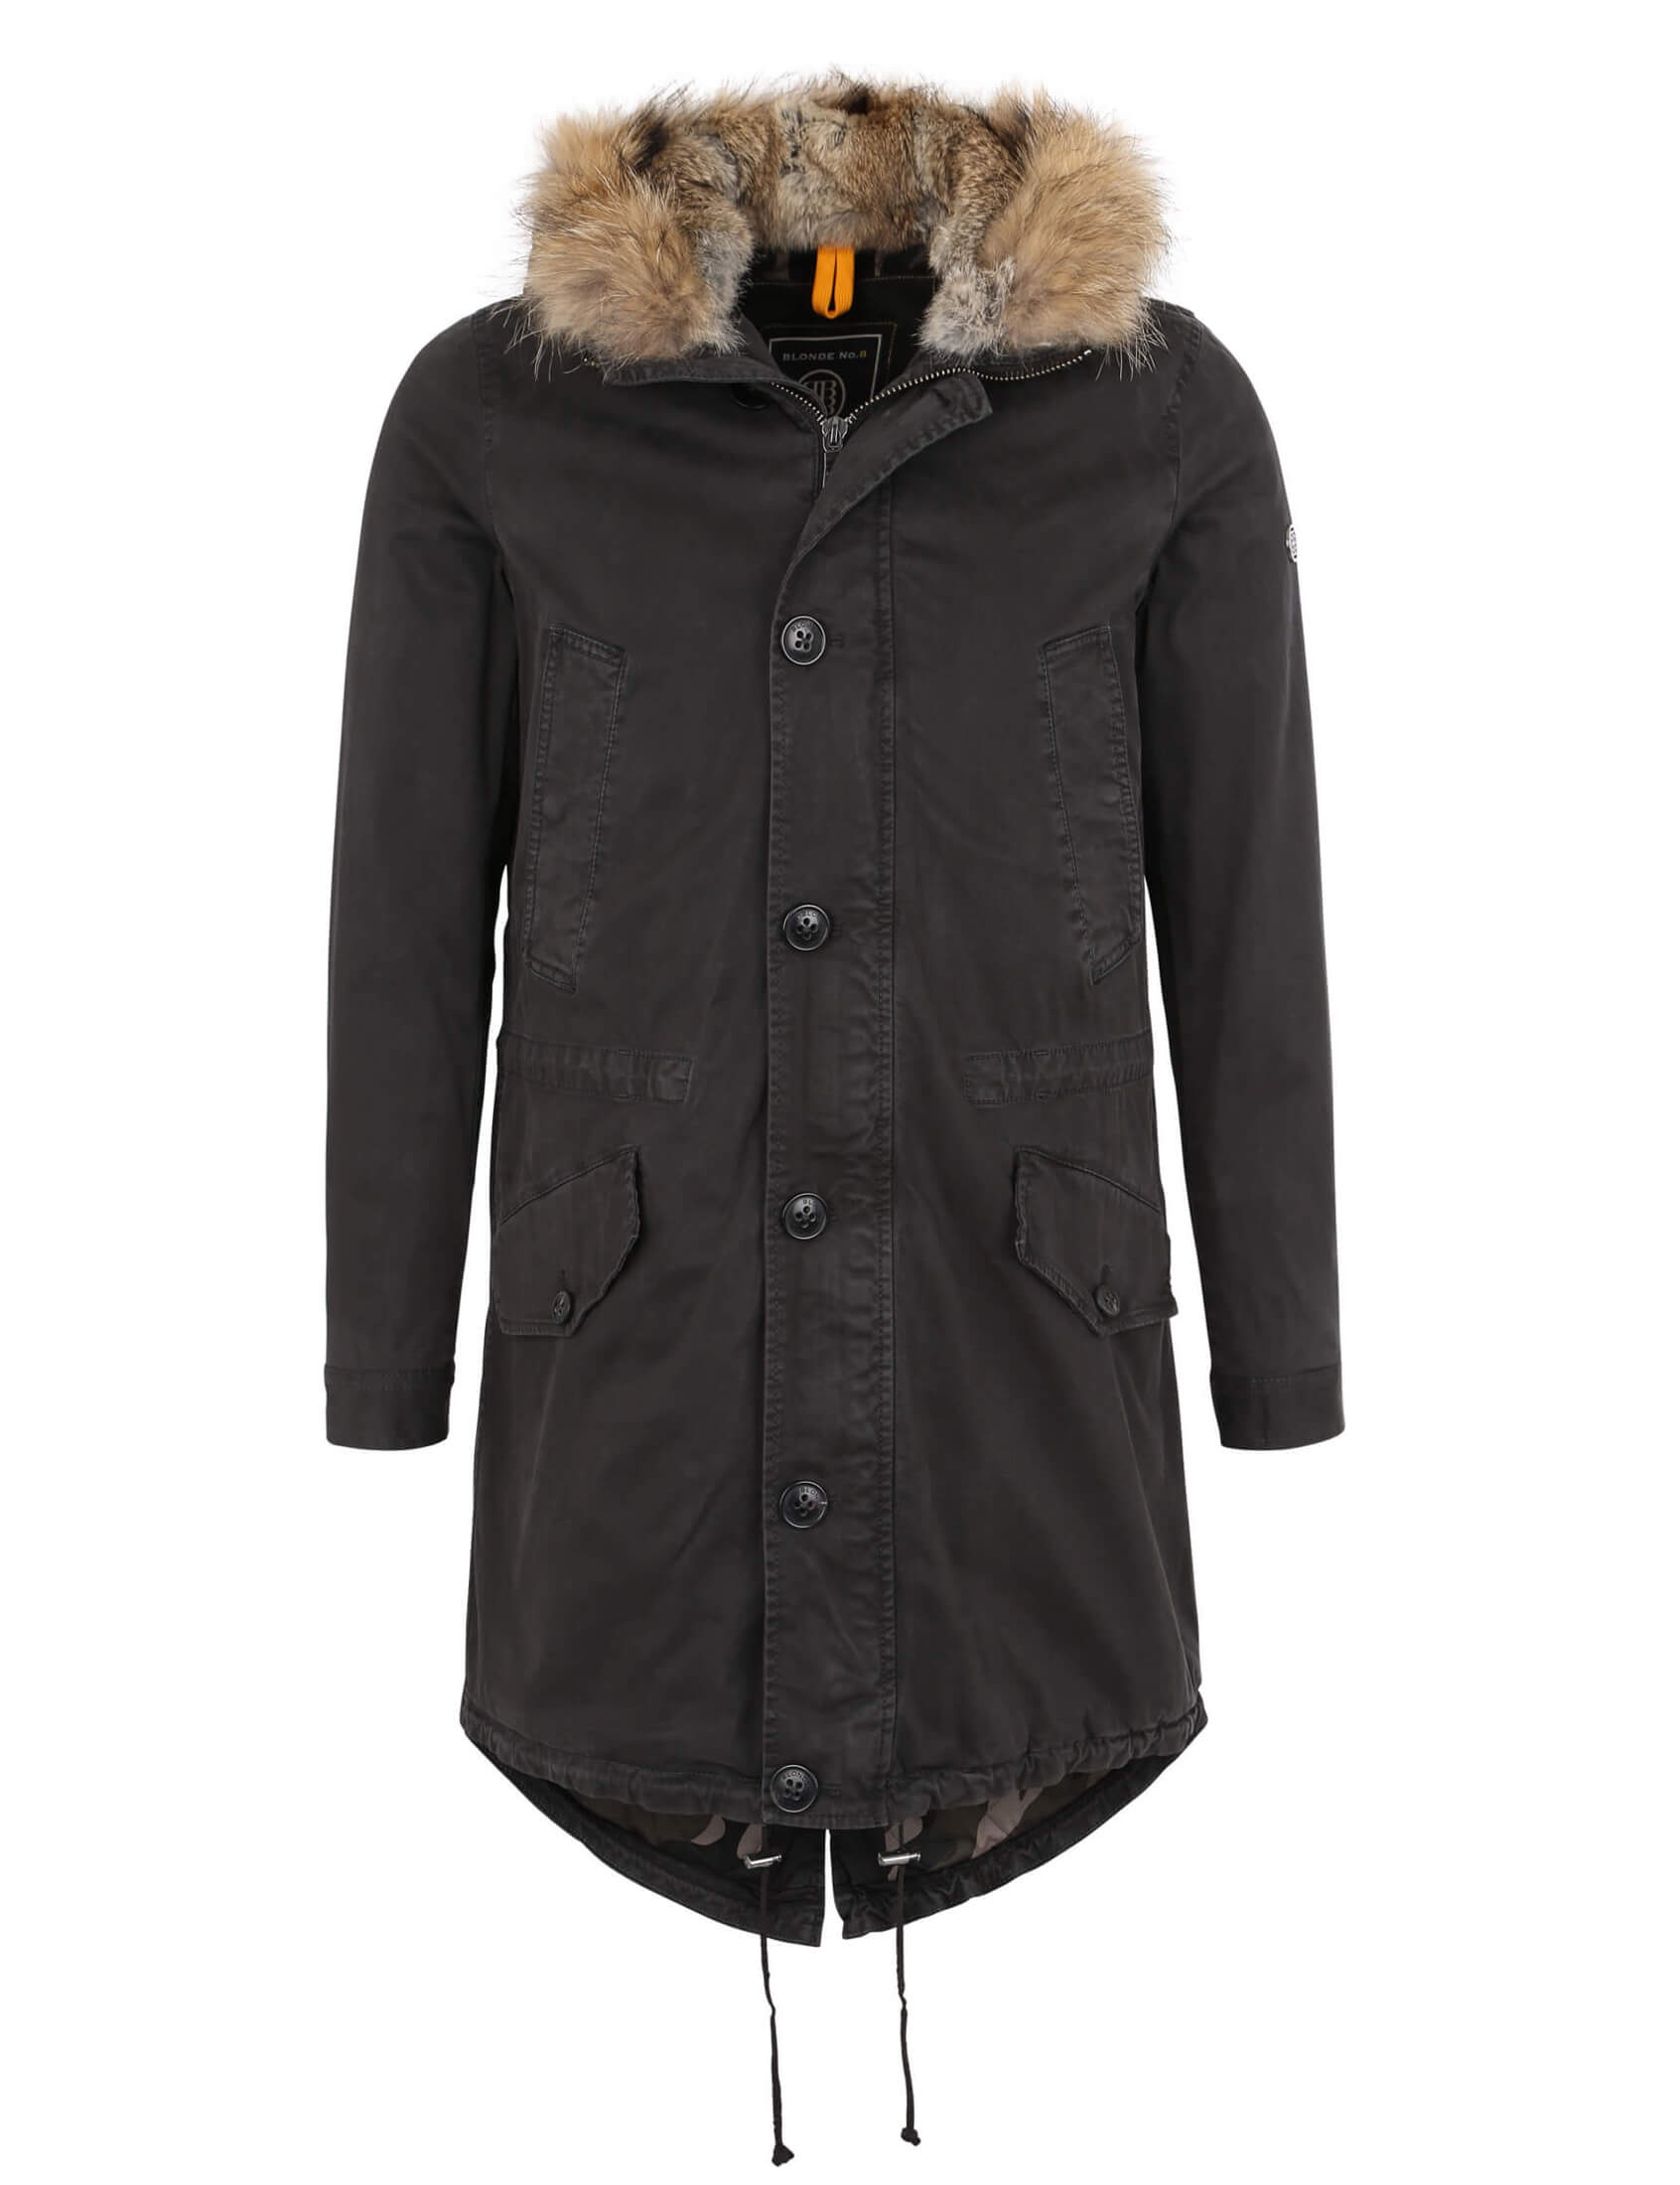 blonde no 8 herren echtfell parka zermatt 515 grafit. Black Bedroom Furniture Sets. Home Design Ideas